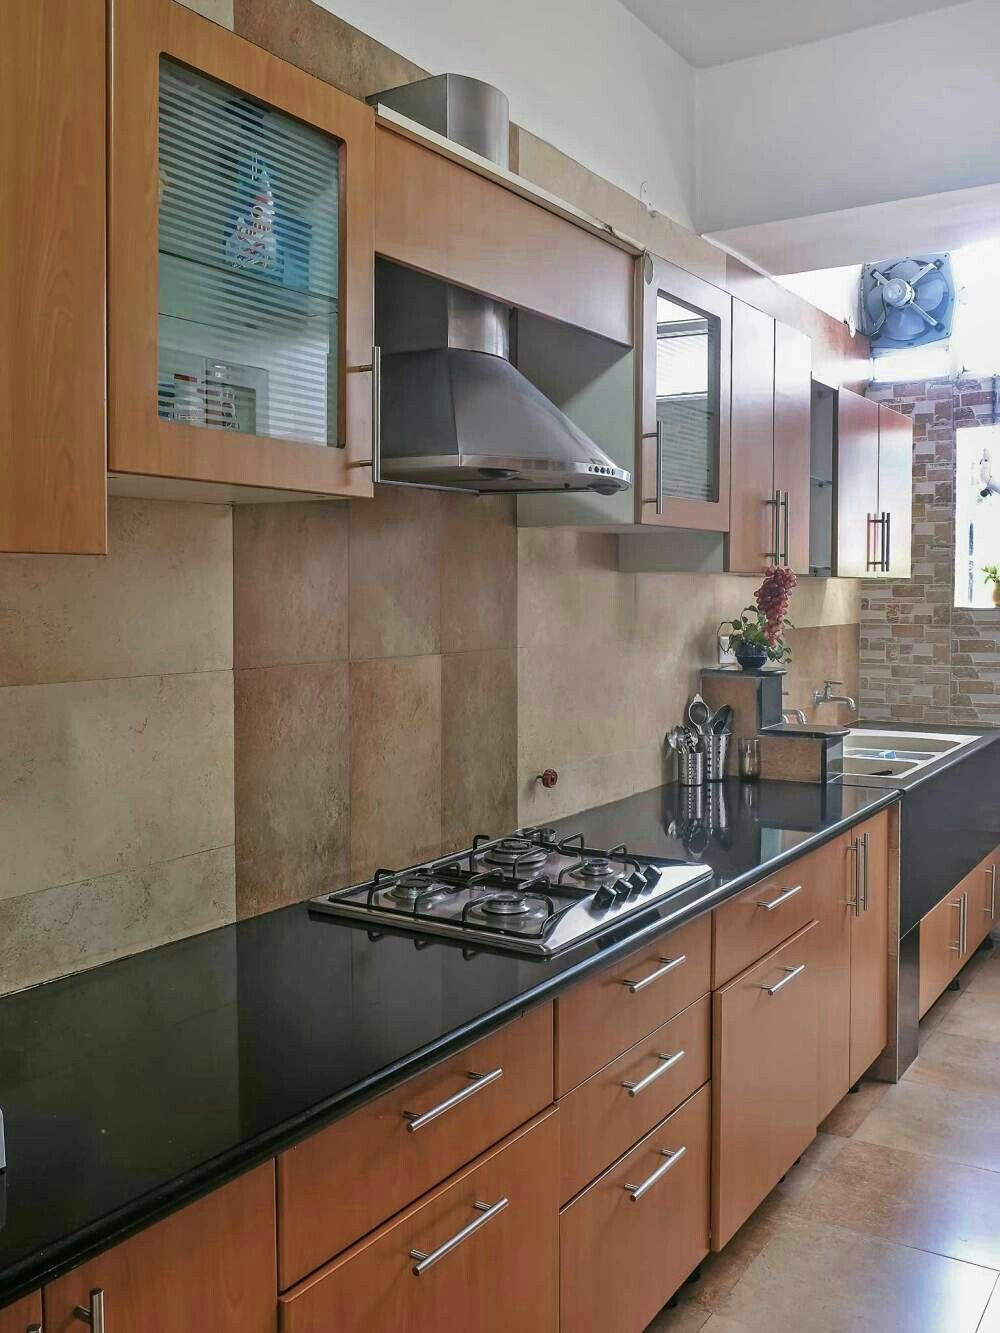 Parallel Kitchen Design India  Google Search  Kitchen Pleasing Home Kitchen Design India Decorating Inspiration